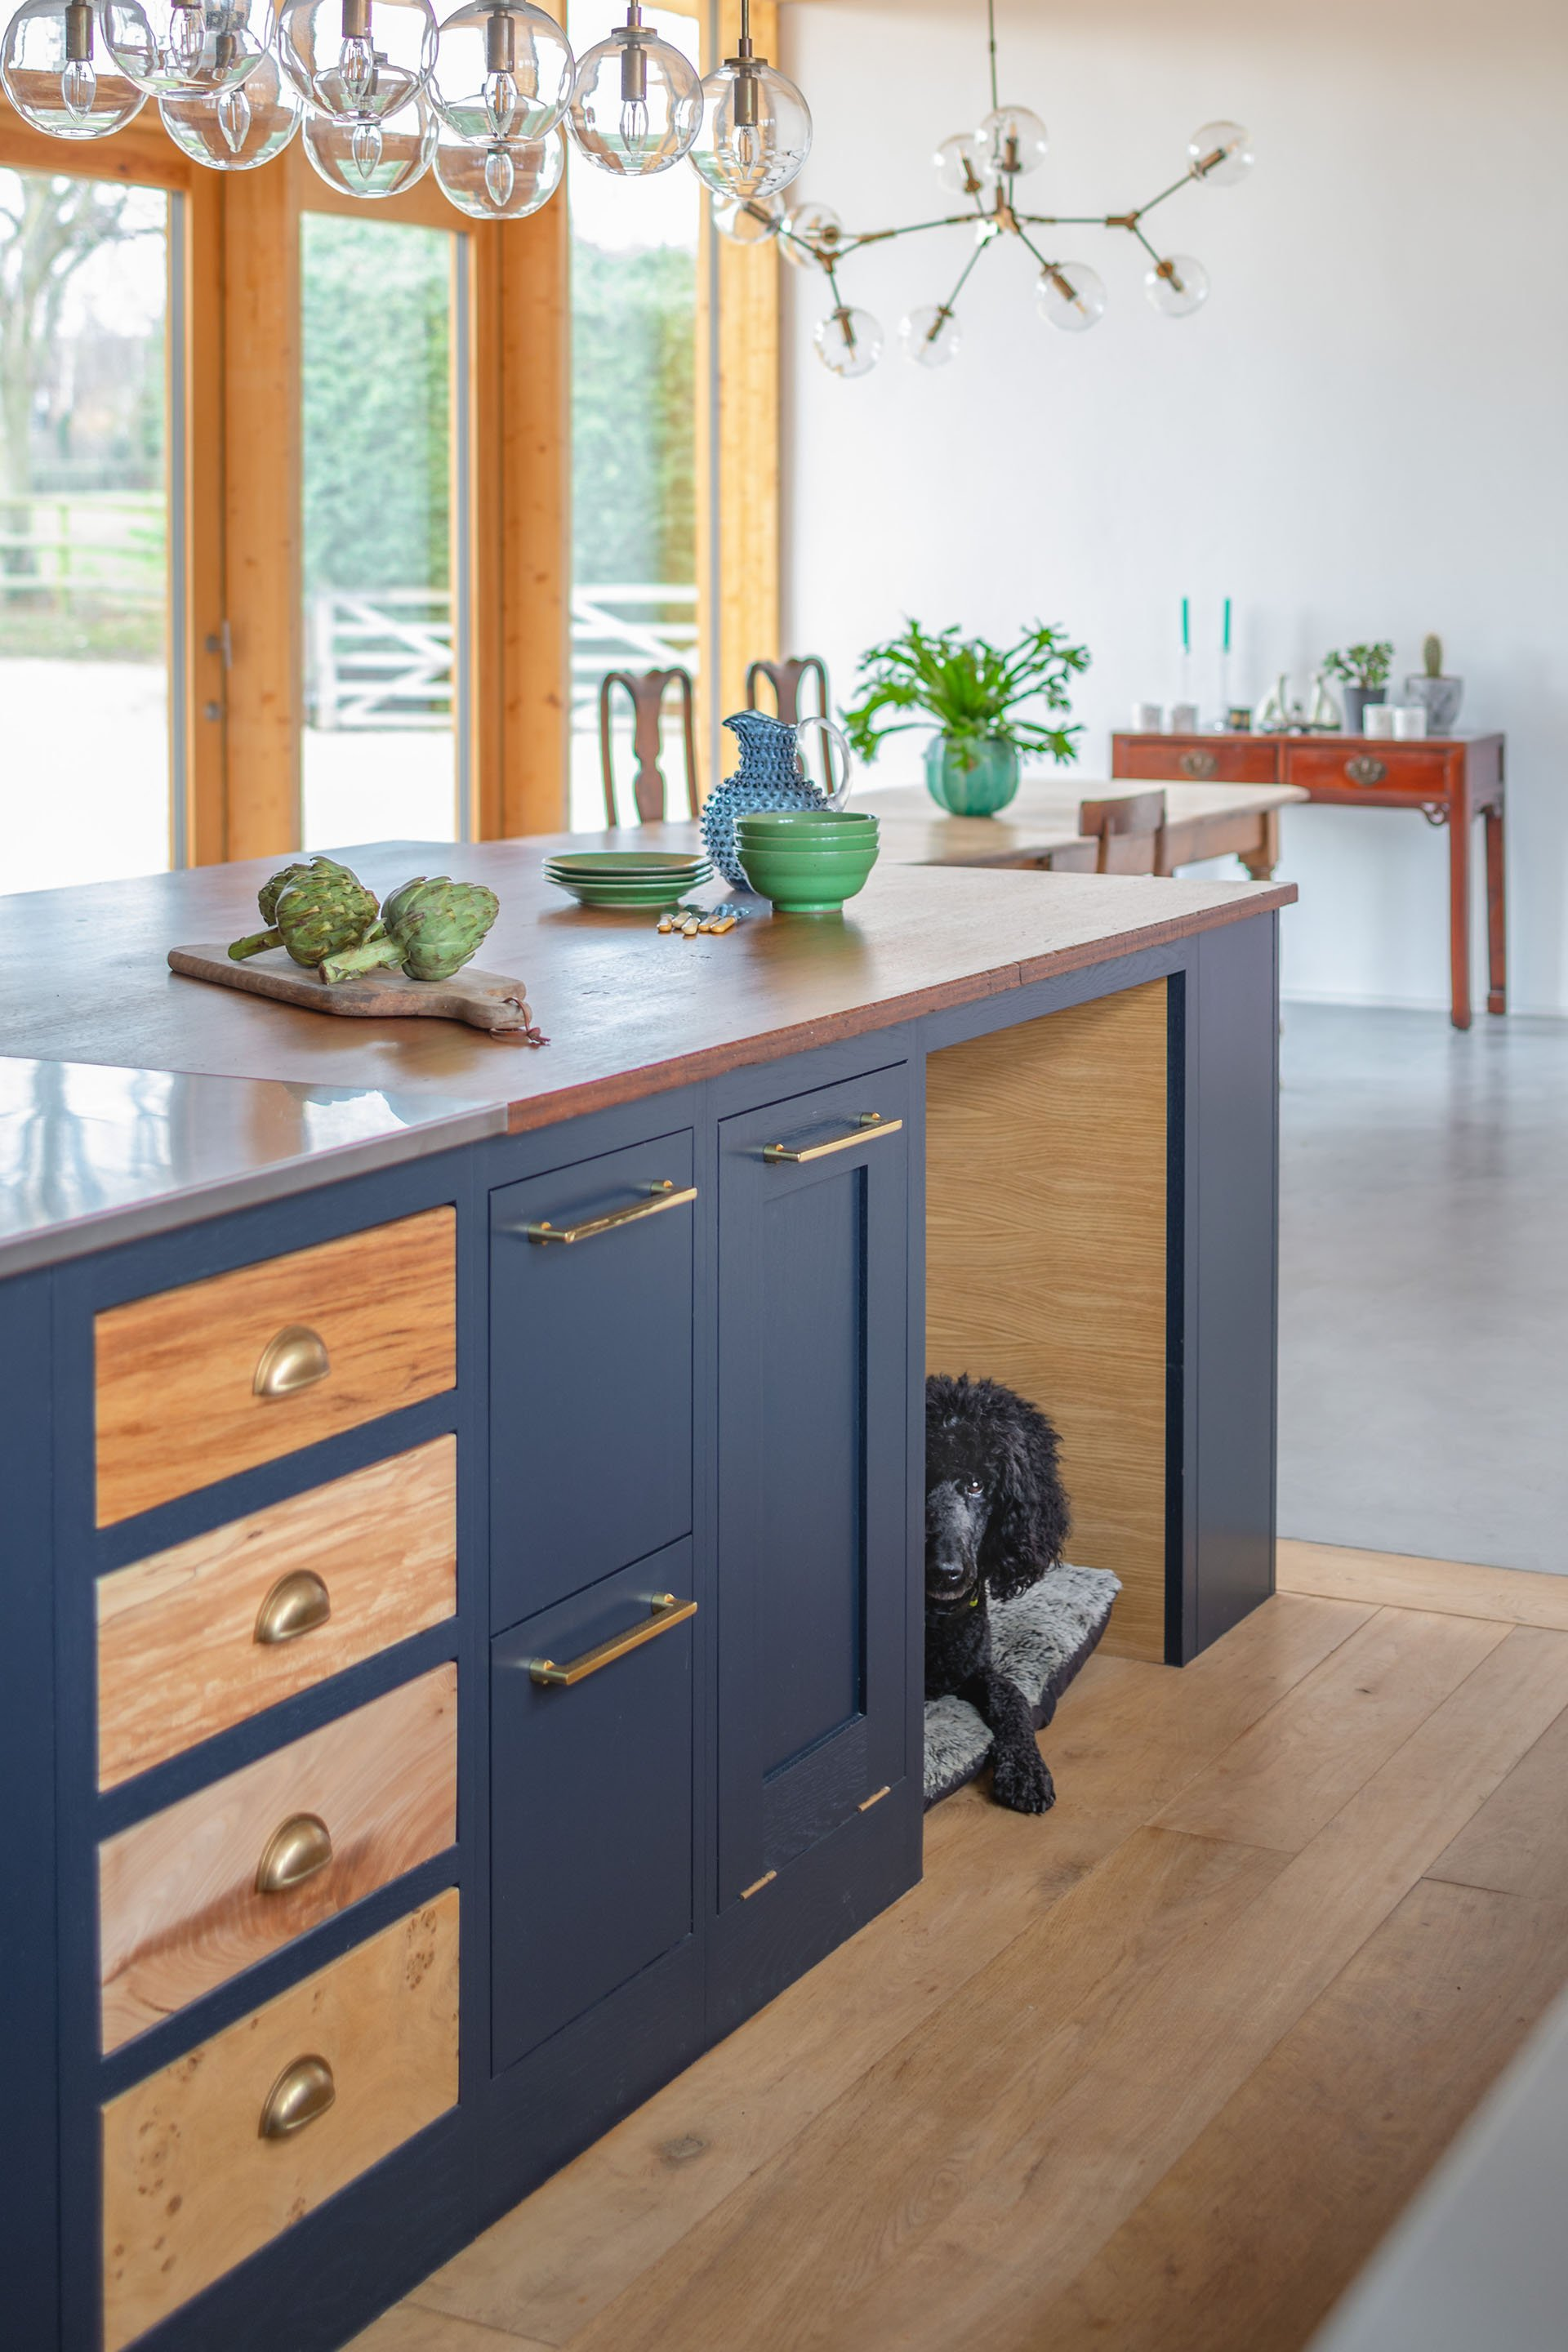 Eco Extension Shaker Kitchen with bespoke dog bed, art deco lighting and floor to ceiling windows looking out onto the garden